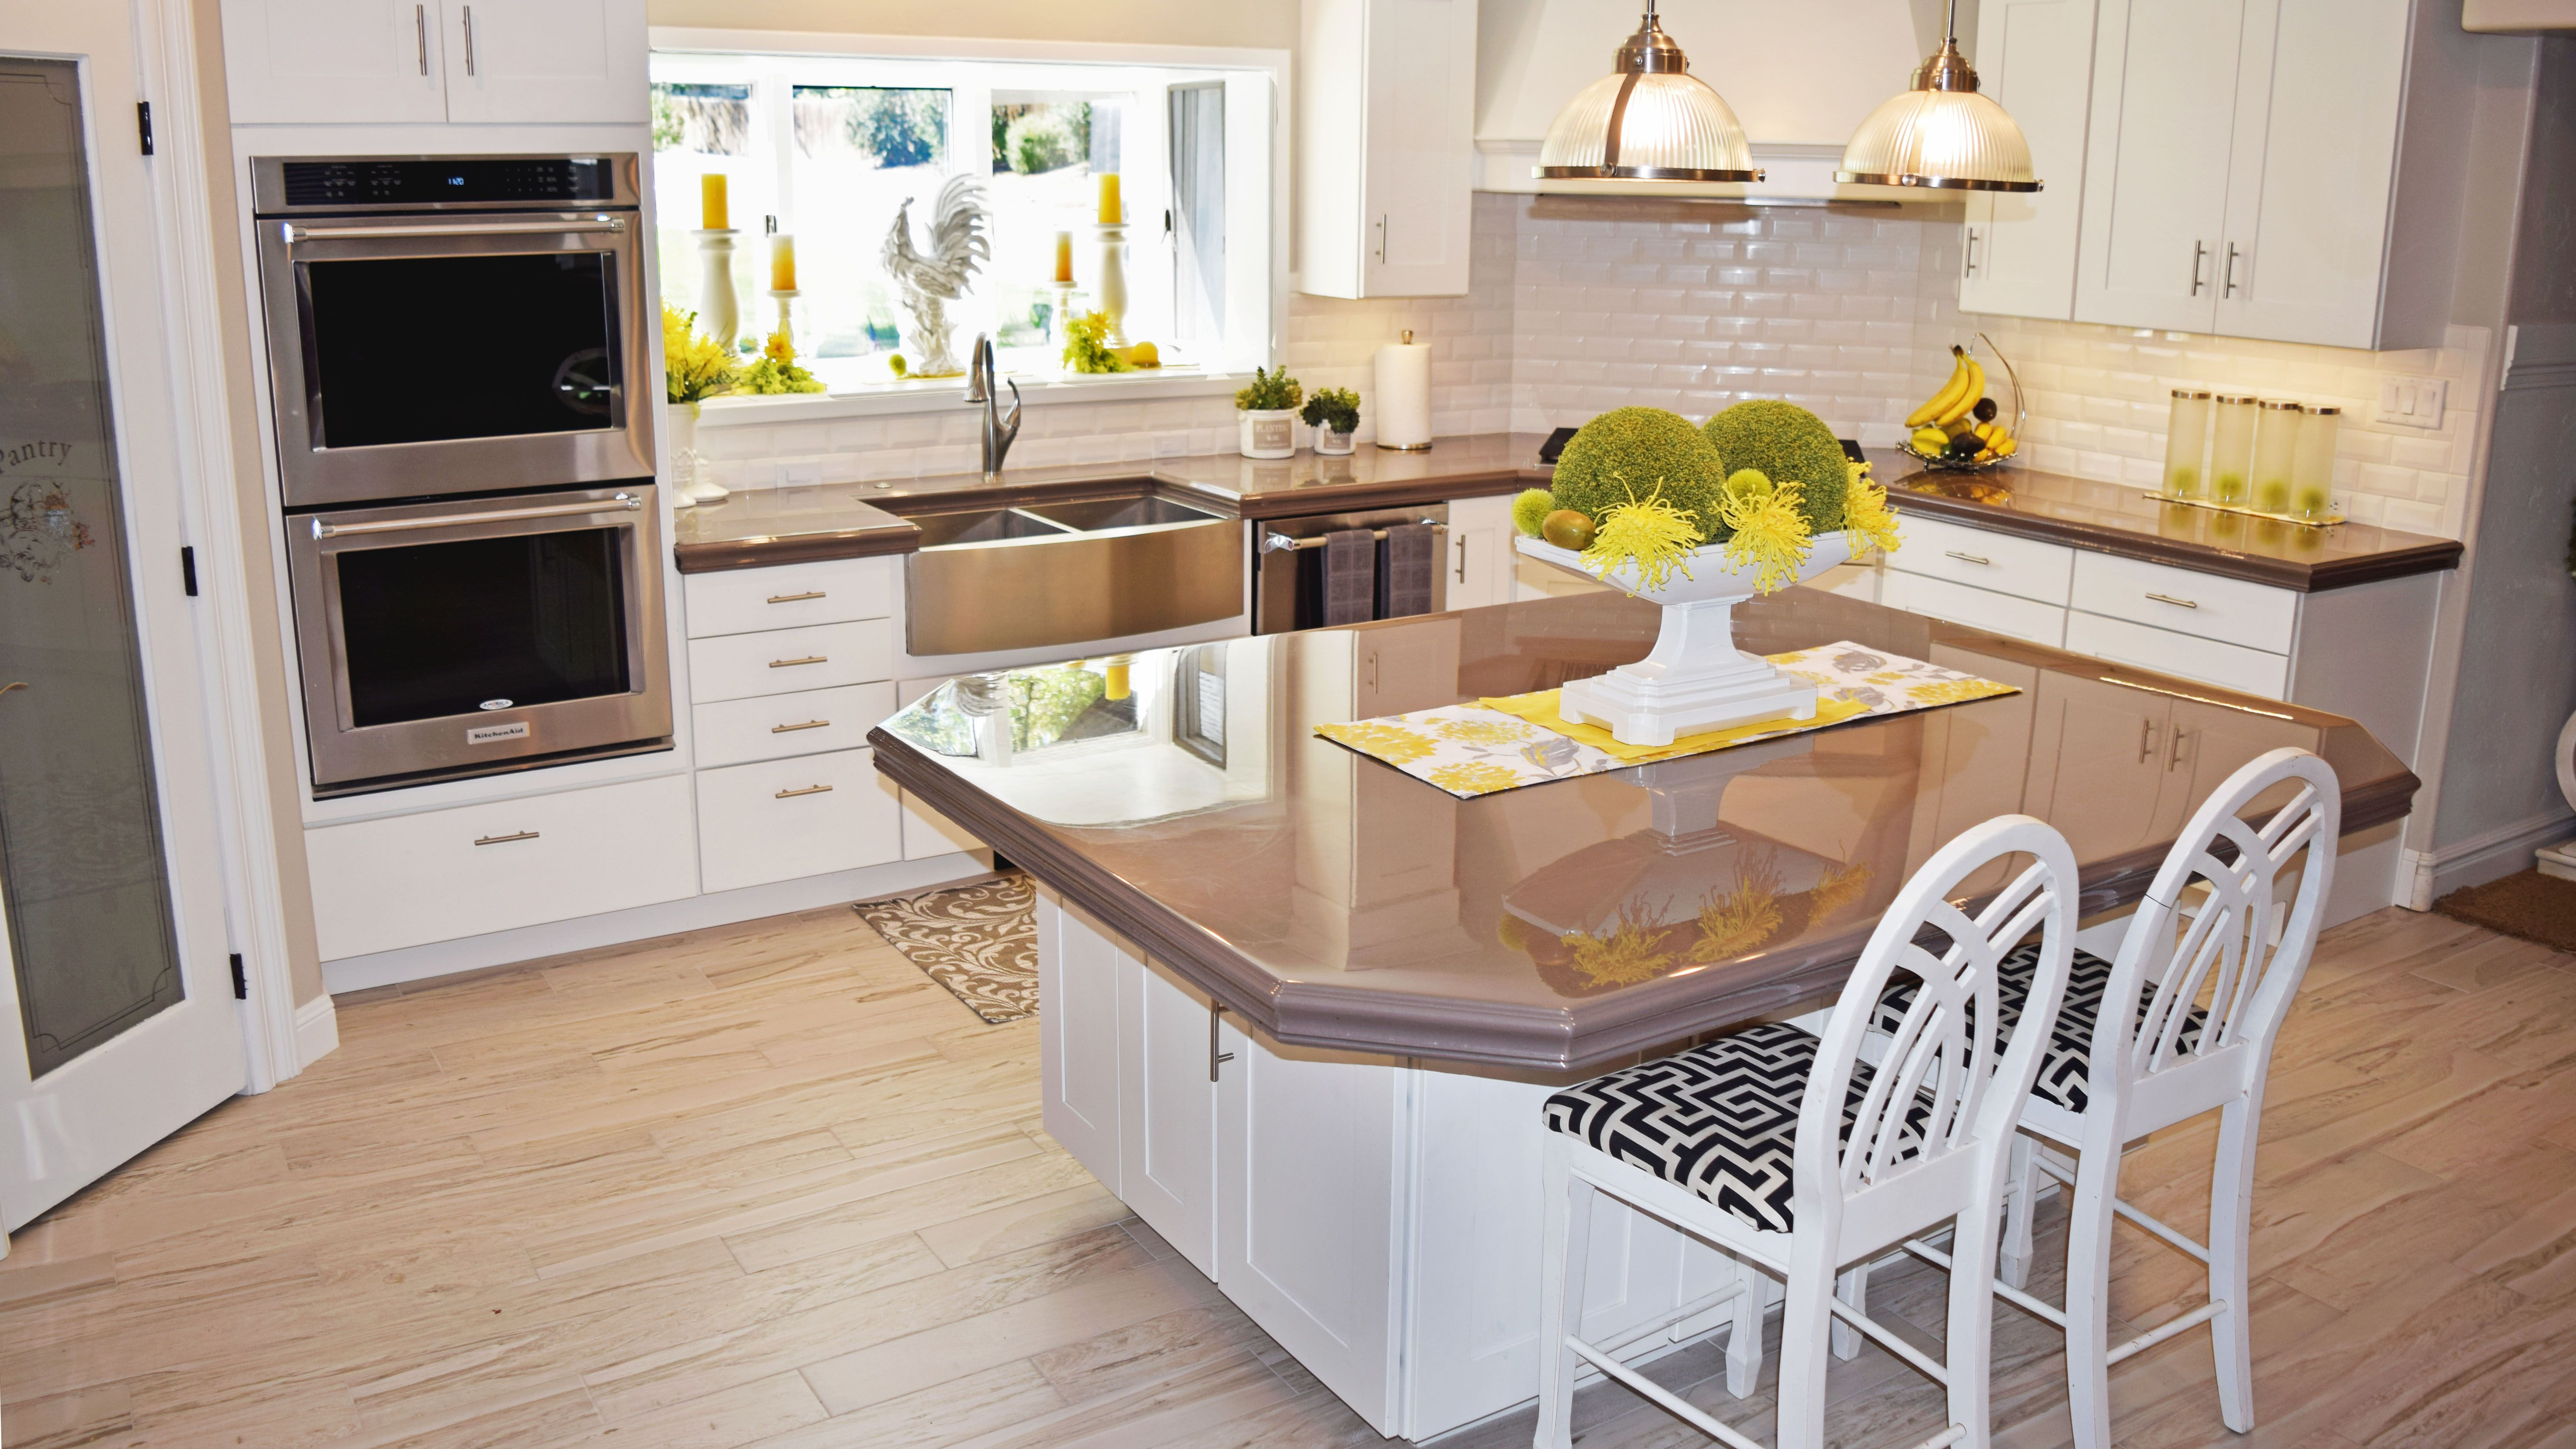 These Epoxy Countertops Matched With White Kitchen Cabinets And Stainless Steel Appliances Keep Your Kitchen Epoxy Countertop Kitchen Design Kitchen Design Diy